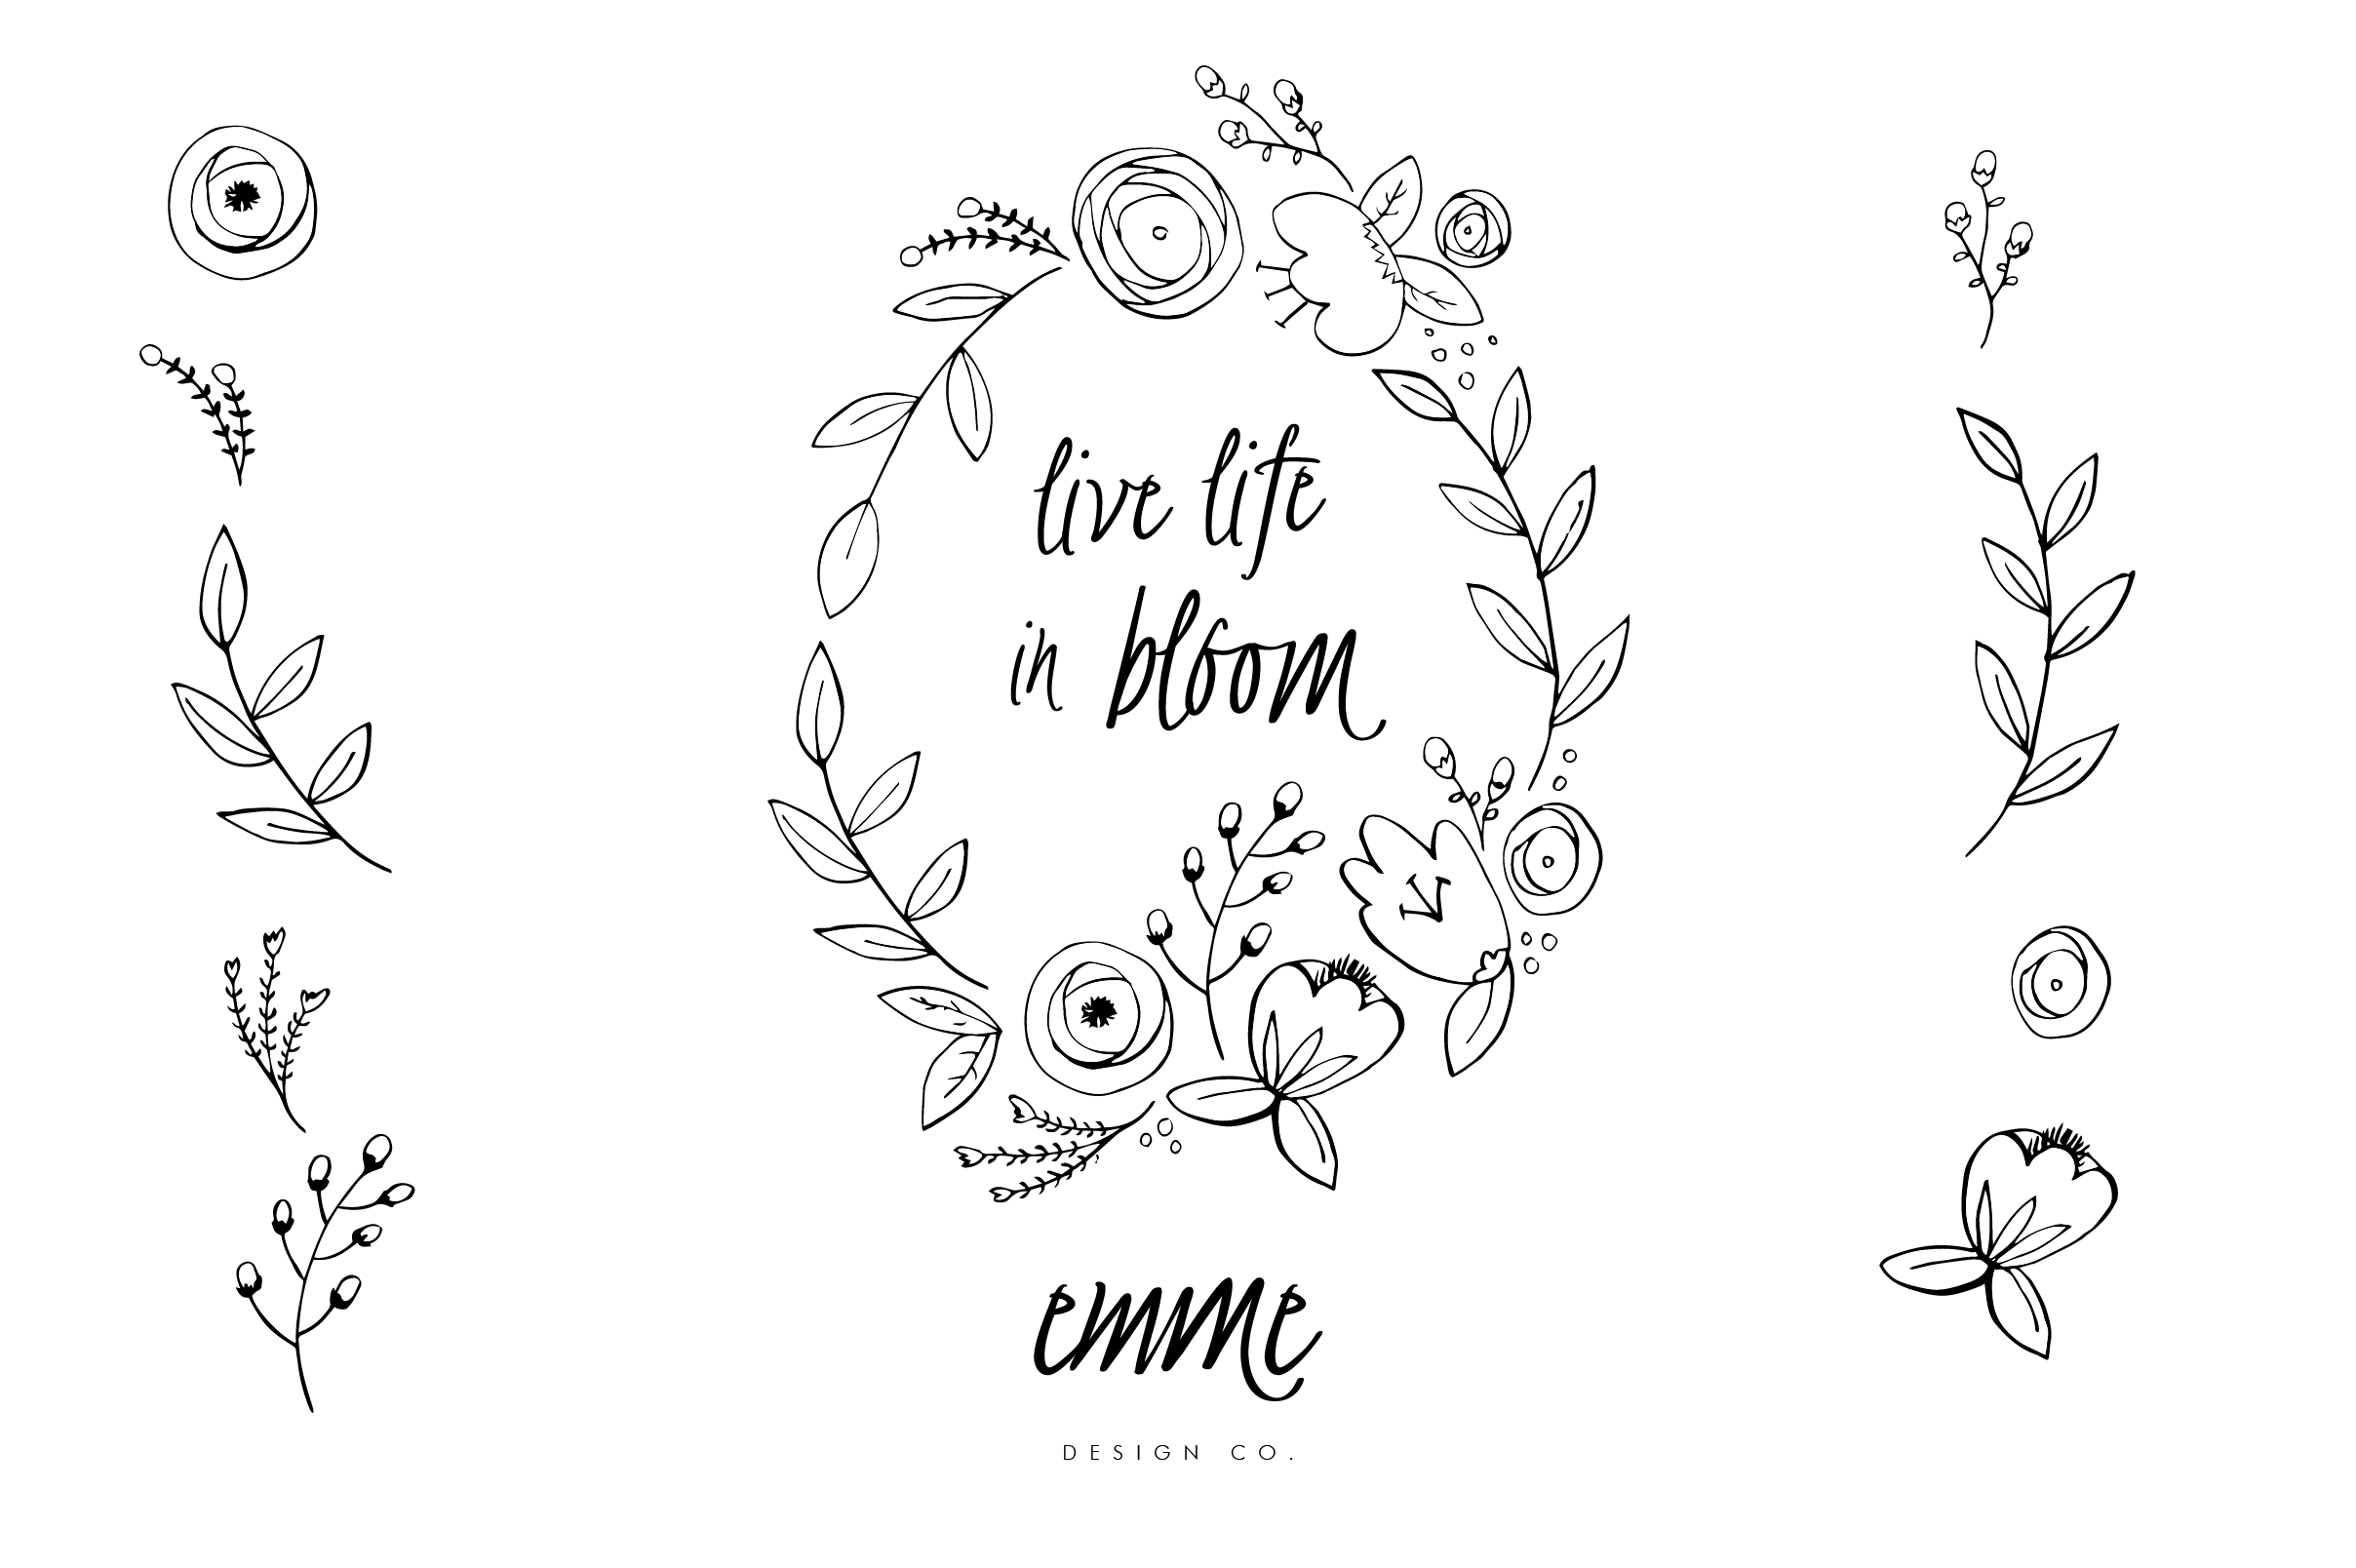 25383 Hand Drawn Floral Wreath additionally Vintage Frame Rsvp besides Royalty Free Stock Image Doves Love Image14583476 furthermore Border Bridal also New Monograms For 2013. on wedding invitions